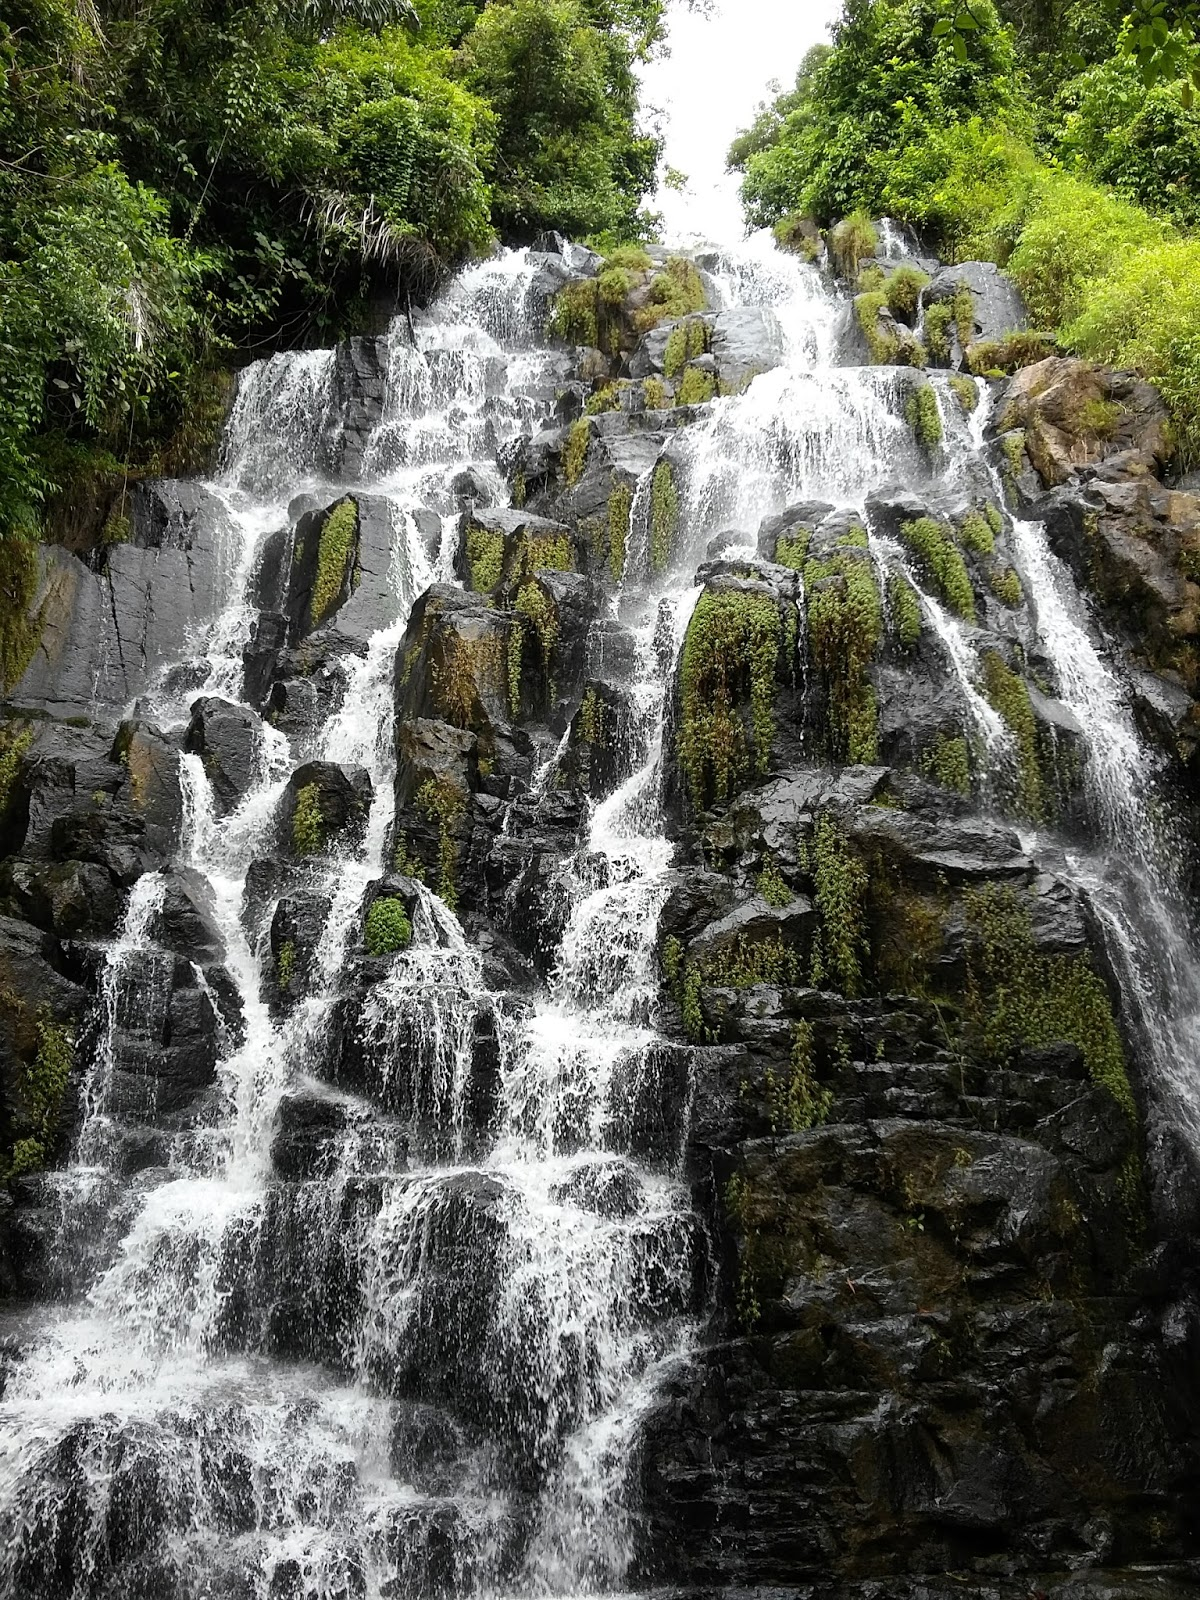 curug buluh is composed of 7 levels of stone steps with a height of up to 40 meters